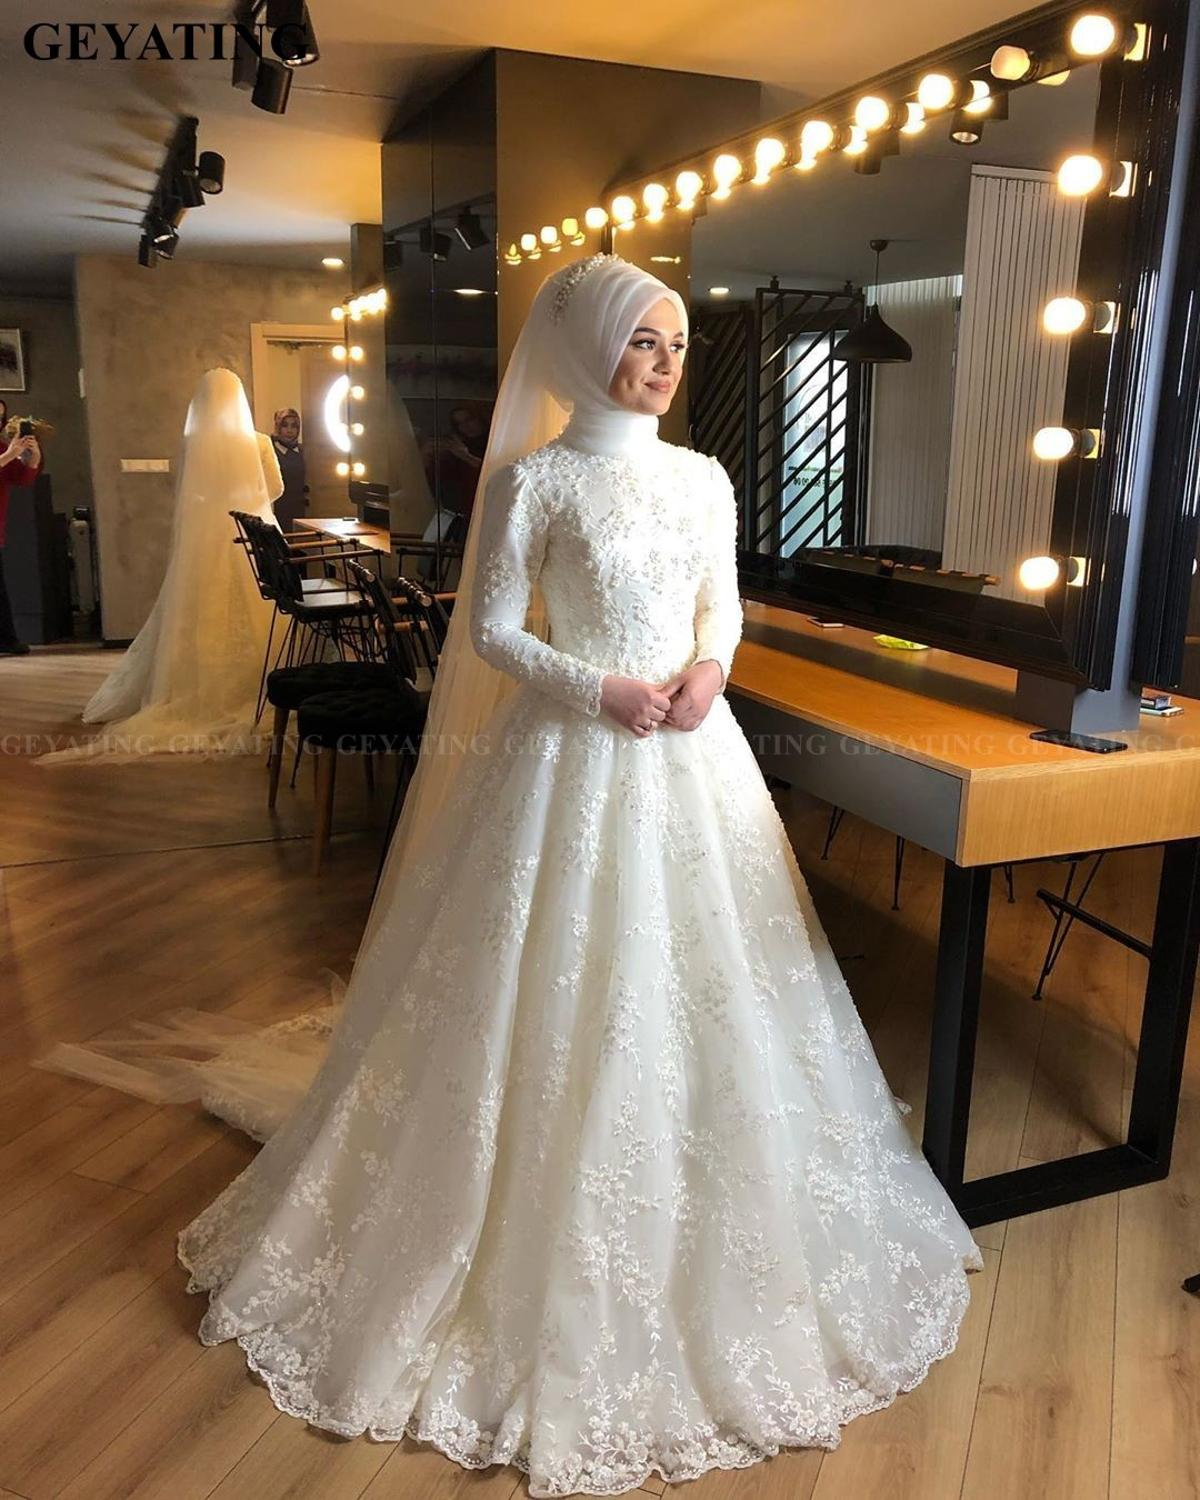 2020 Elegant Off White Islamic Muslim Wedding Dress with Hijab Long Sleeves High Neck Pearls Lace Arabic Bridal Gowns in Dubai-in Wedding Dresses from Weddings & Events